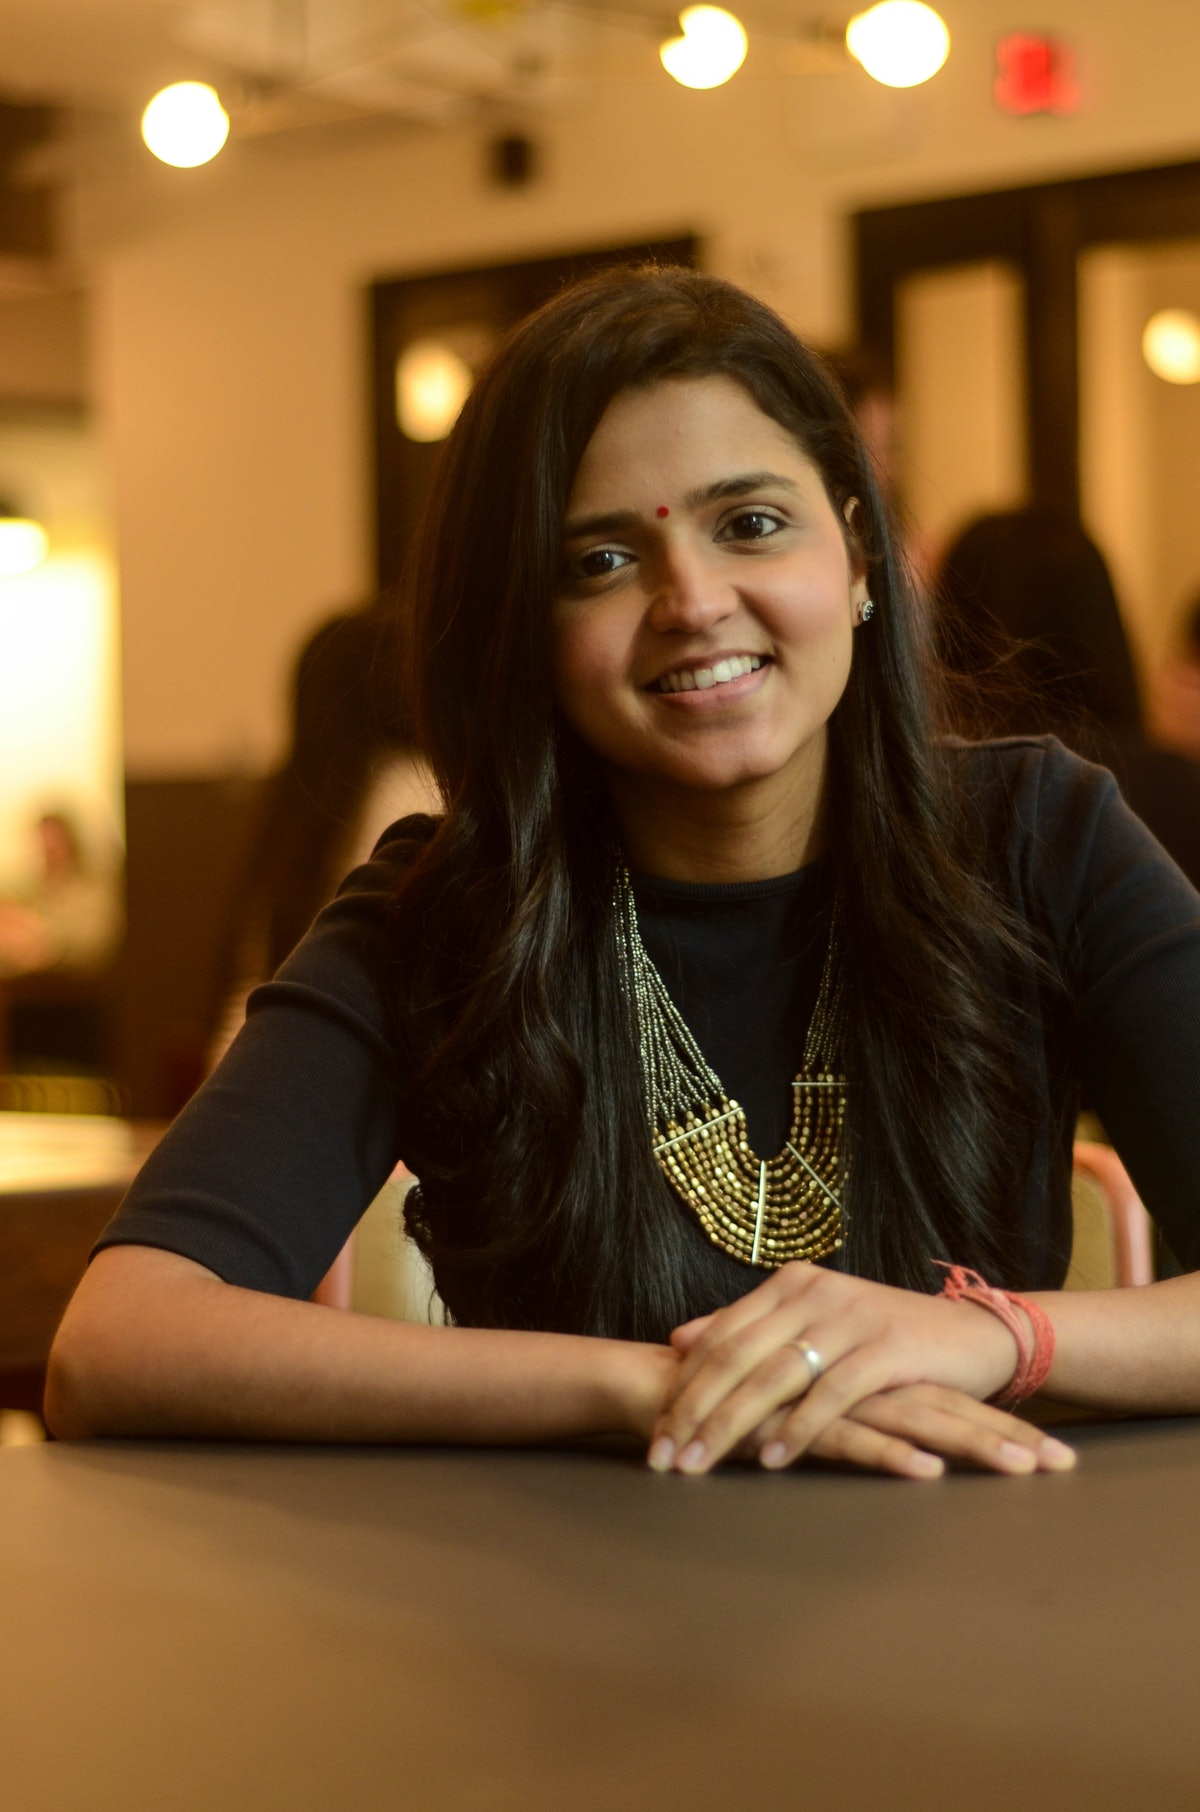 FoodtoEat Founder Deepti Sharma On Why You Shouldn't Wait To Start Your Business